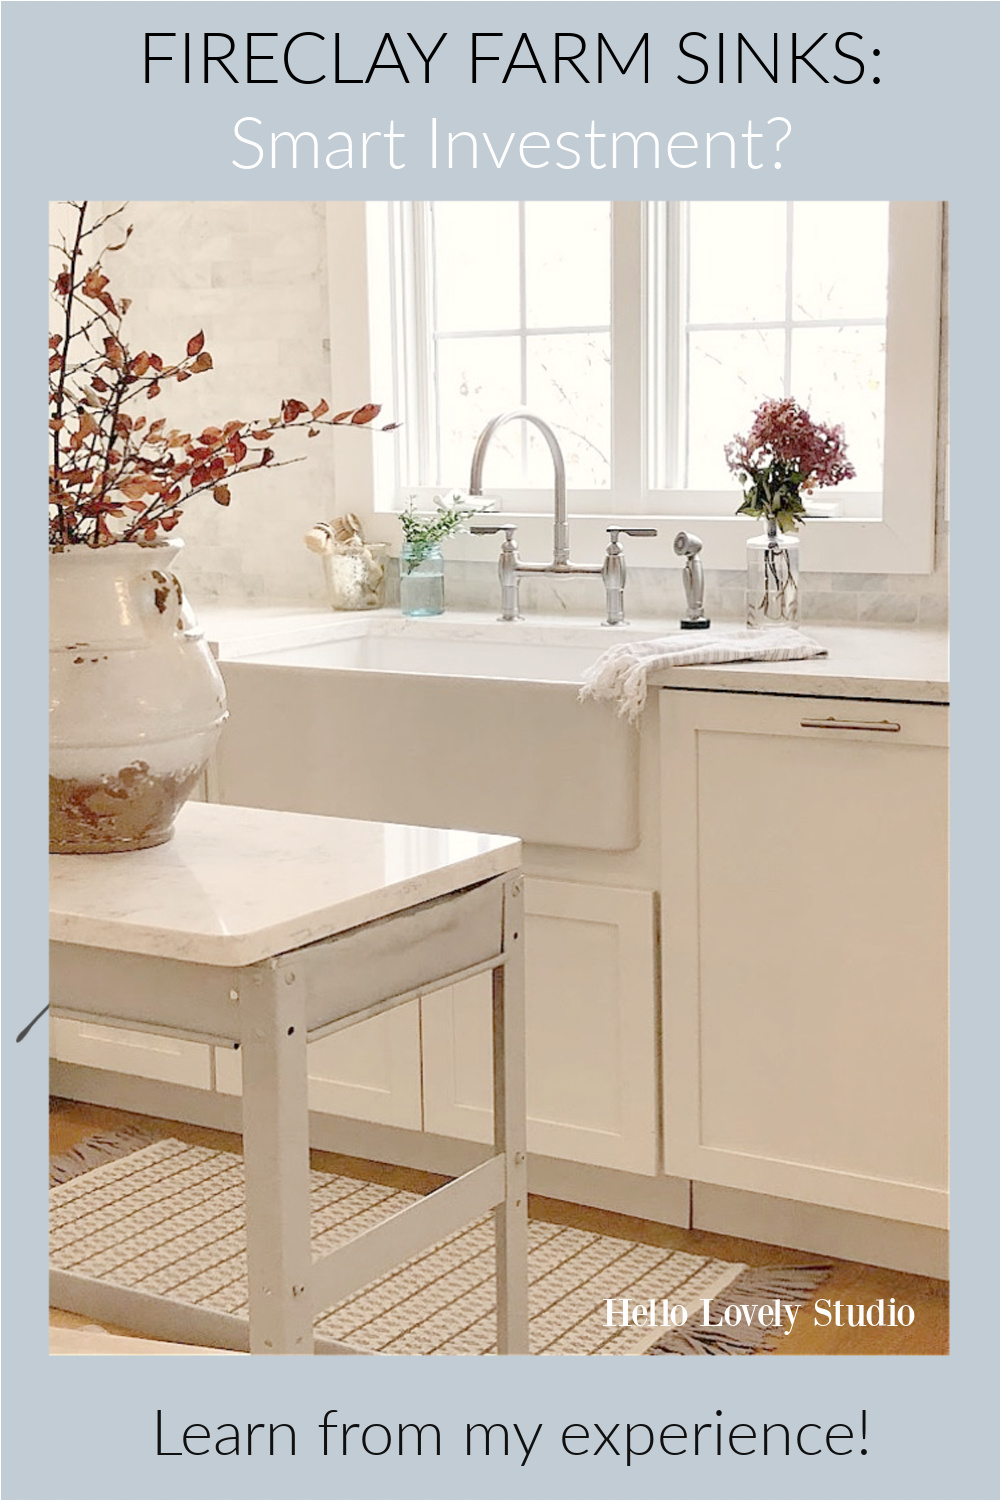 Fireclay farm sinks: smart investment? Come learn from my experience on Hello Lovely Studio. #farmsinks #fireclayfarmsink #kitchendesign #kitchensinks